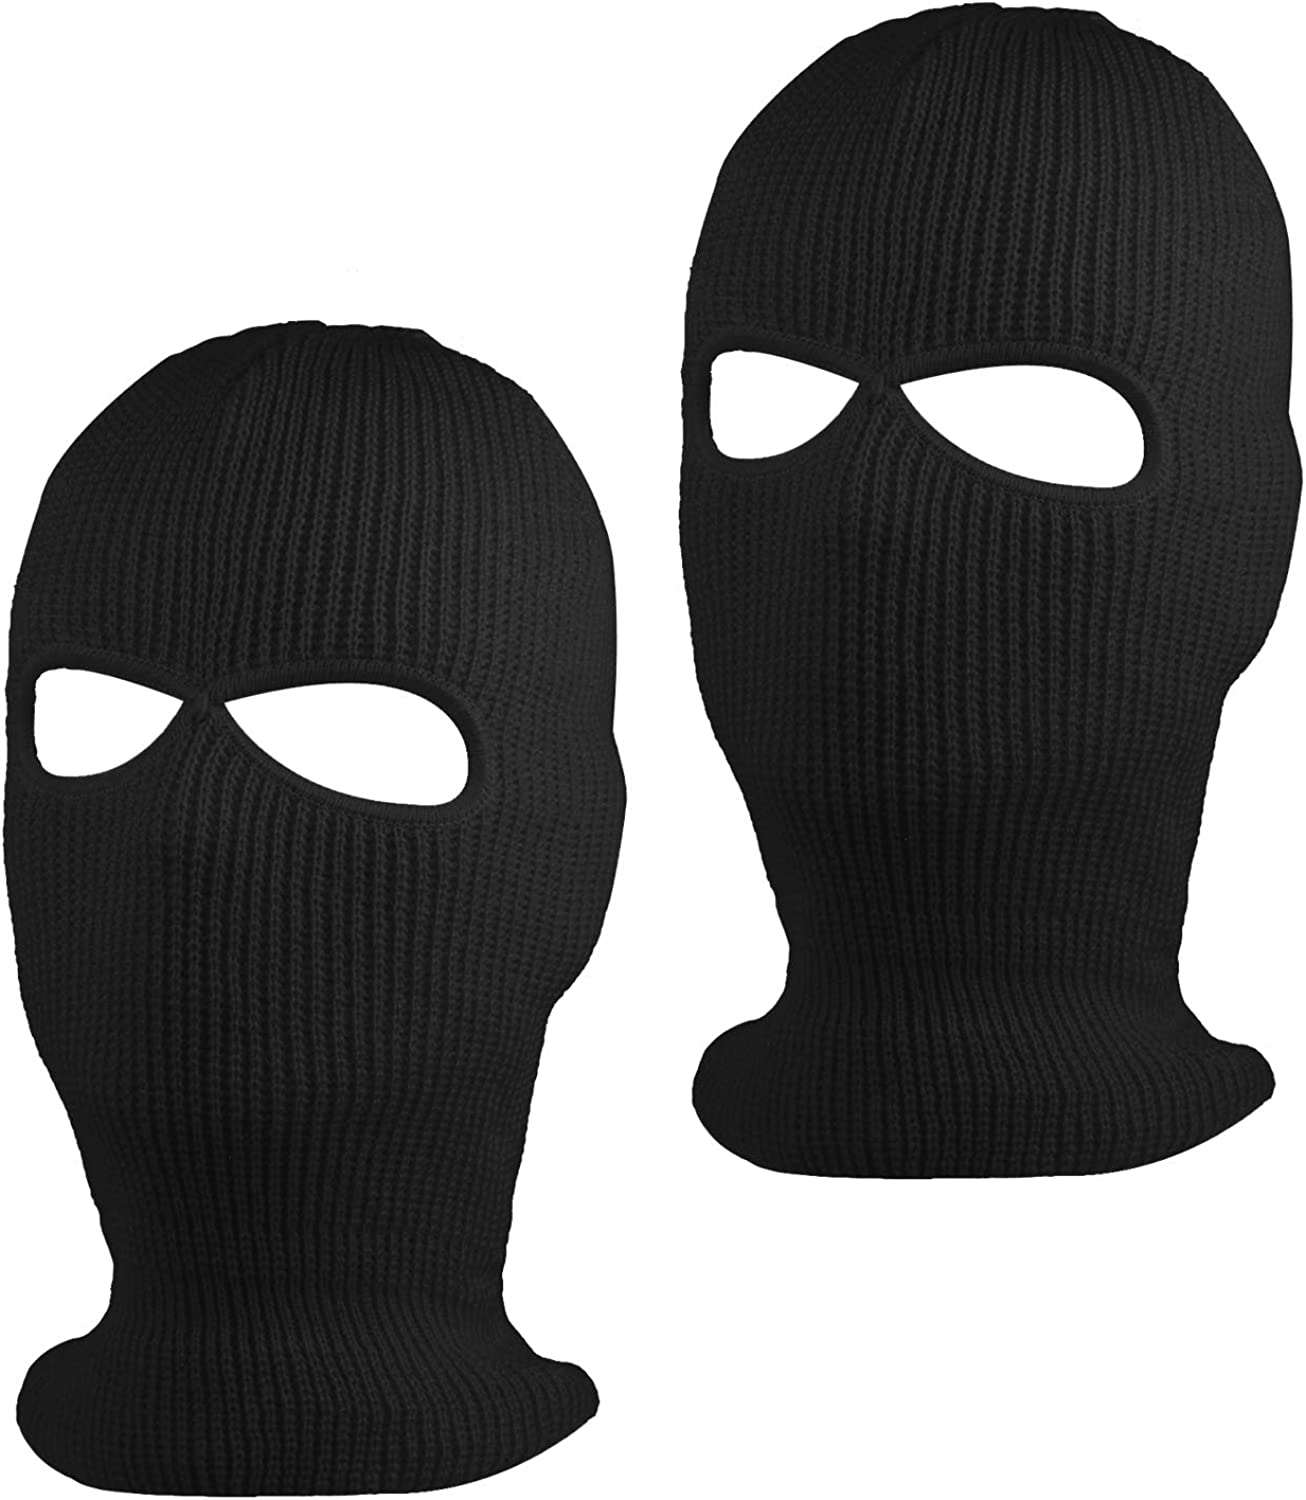 Suntrade 2 Hole Knitted Full Face Cover Ski Mask Winter Balaclava Beanie For Outdoor Sport Set Of 2 Blackx2 At Amazon Men S Clothing Store